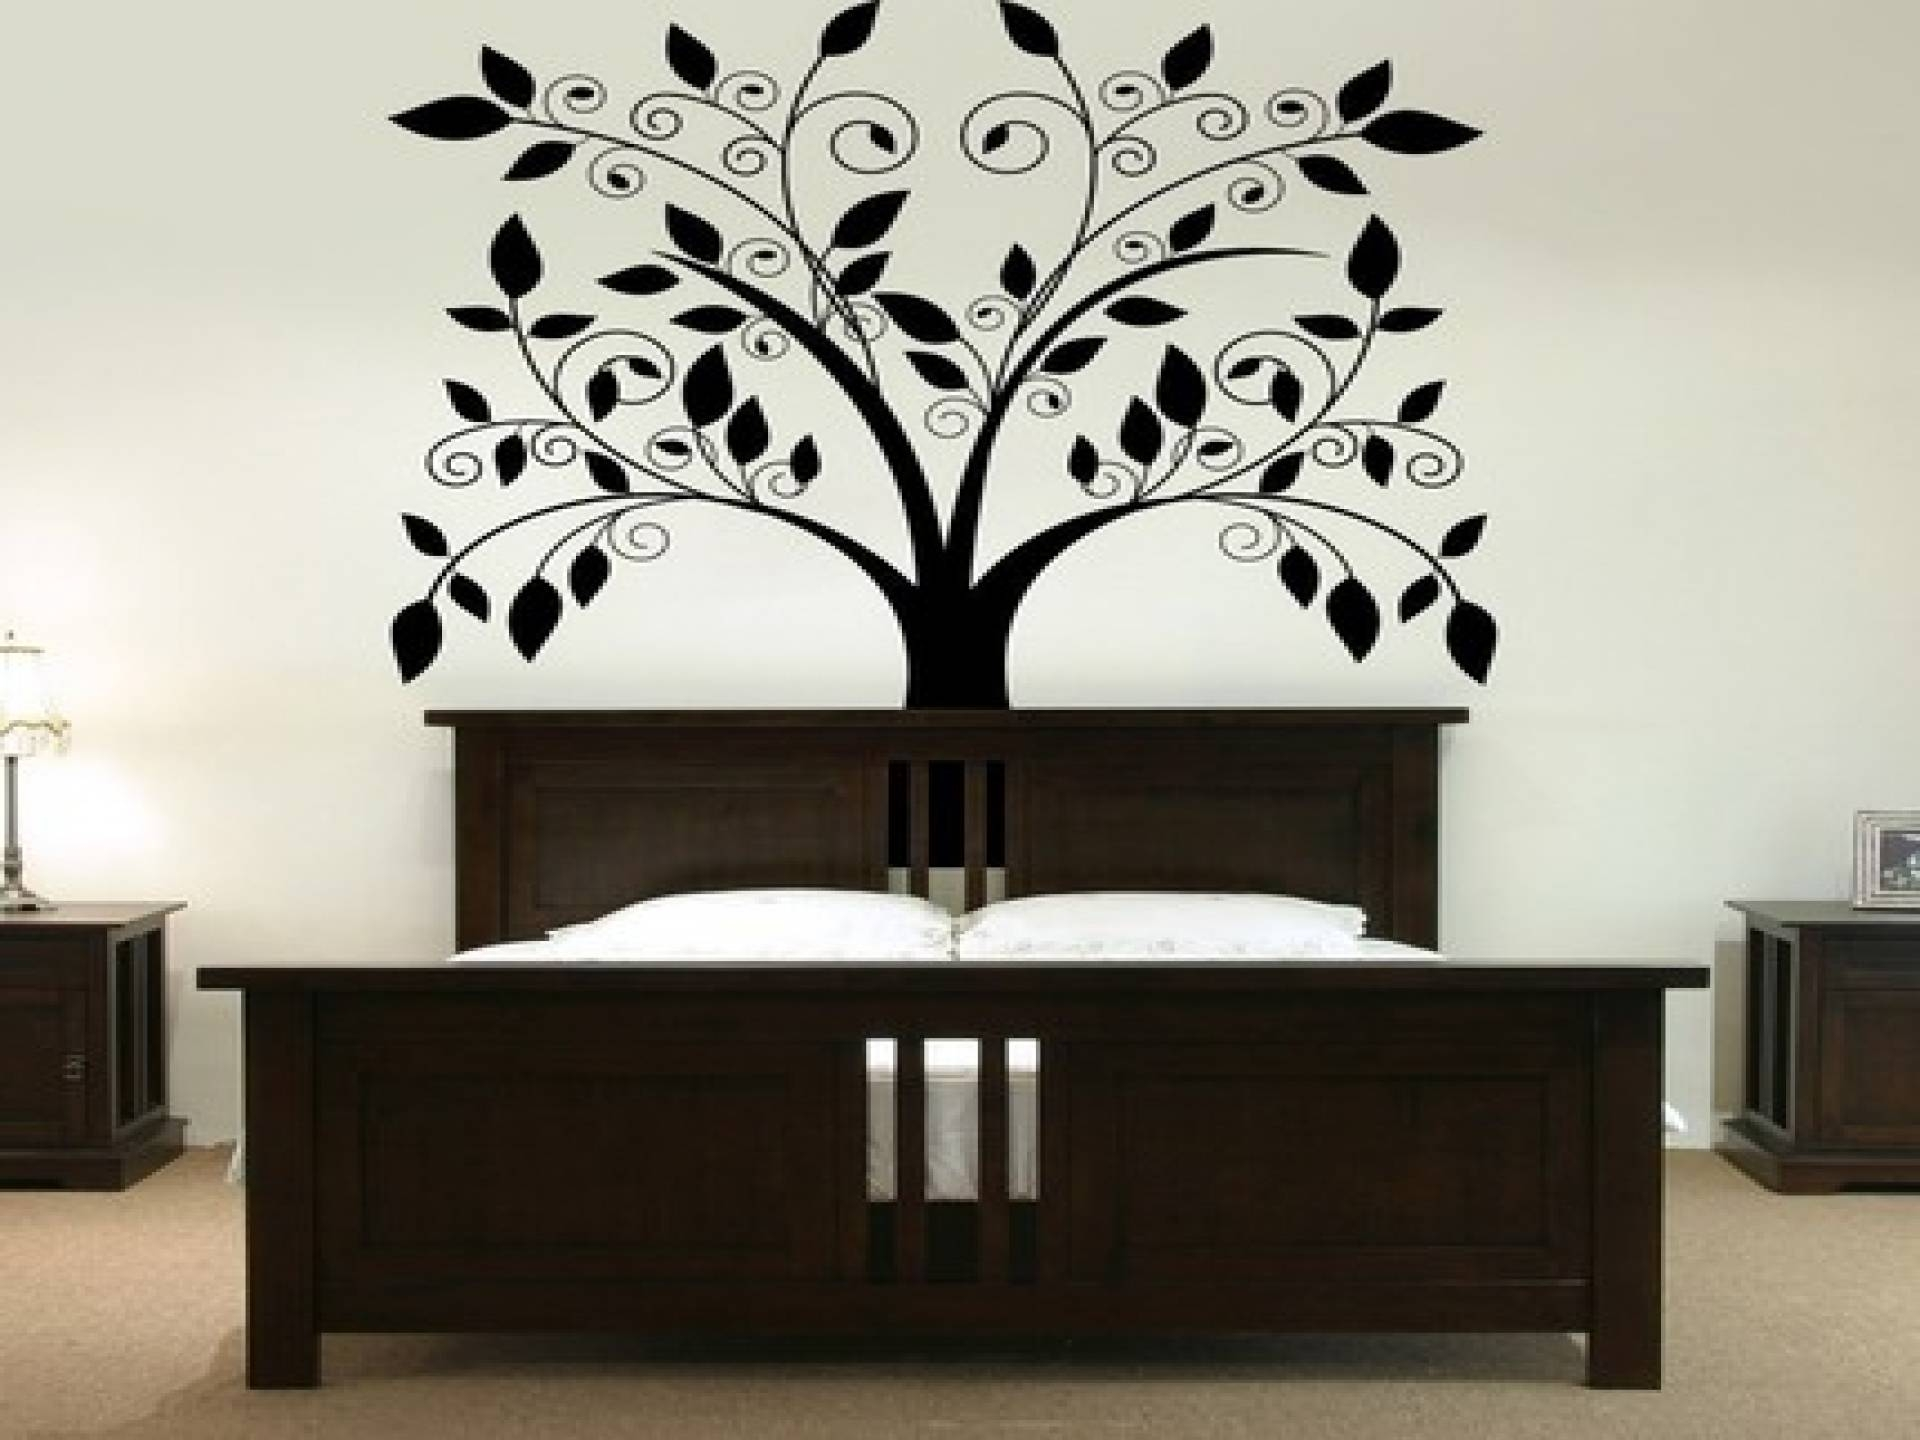 30 Wall Decor Ideas For Your Home Within Most Recently Released Preschool Classroom Wall Decals (View 4 of 30)